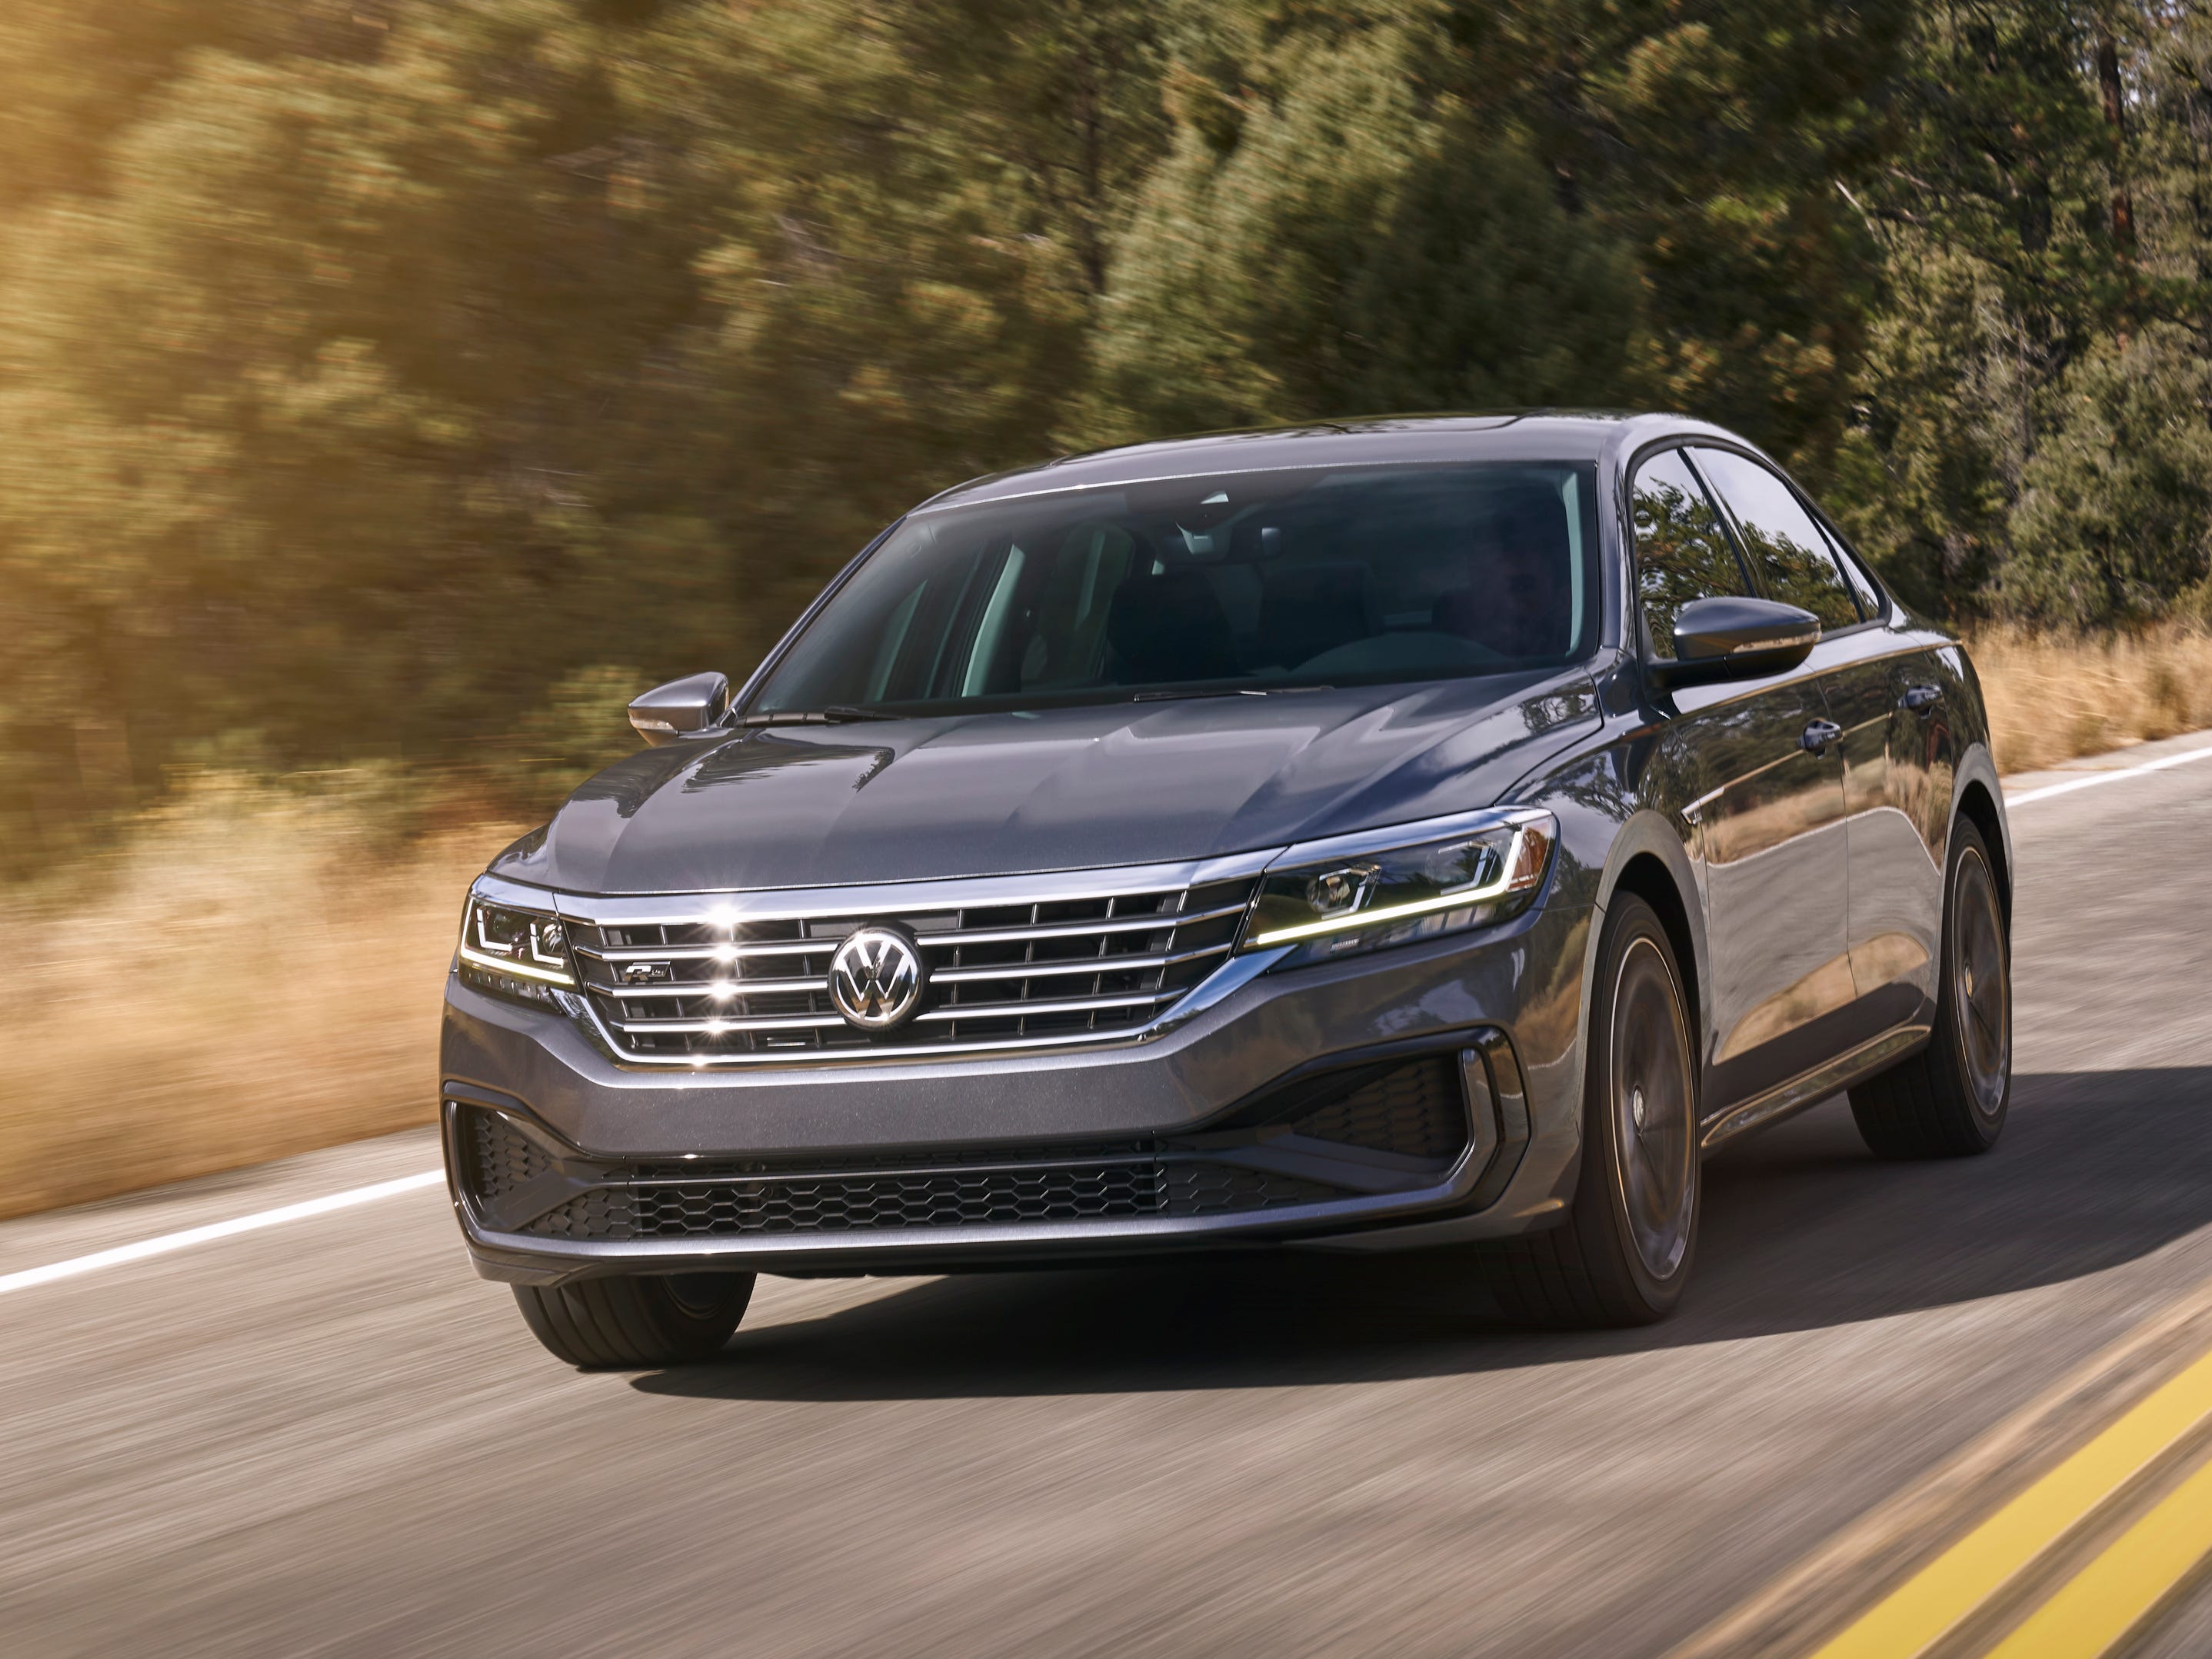 The new Passat offers a comprehensive suite of standard and available driver-assistance technology. Every Passat includes standard Forward Collision Warning and Autonomous Emergency Braking (Front Assist), now with Pedestrian Monitoring, as well as Blind Spot Monitor, and Rear Traffic Alert.